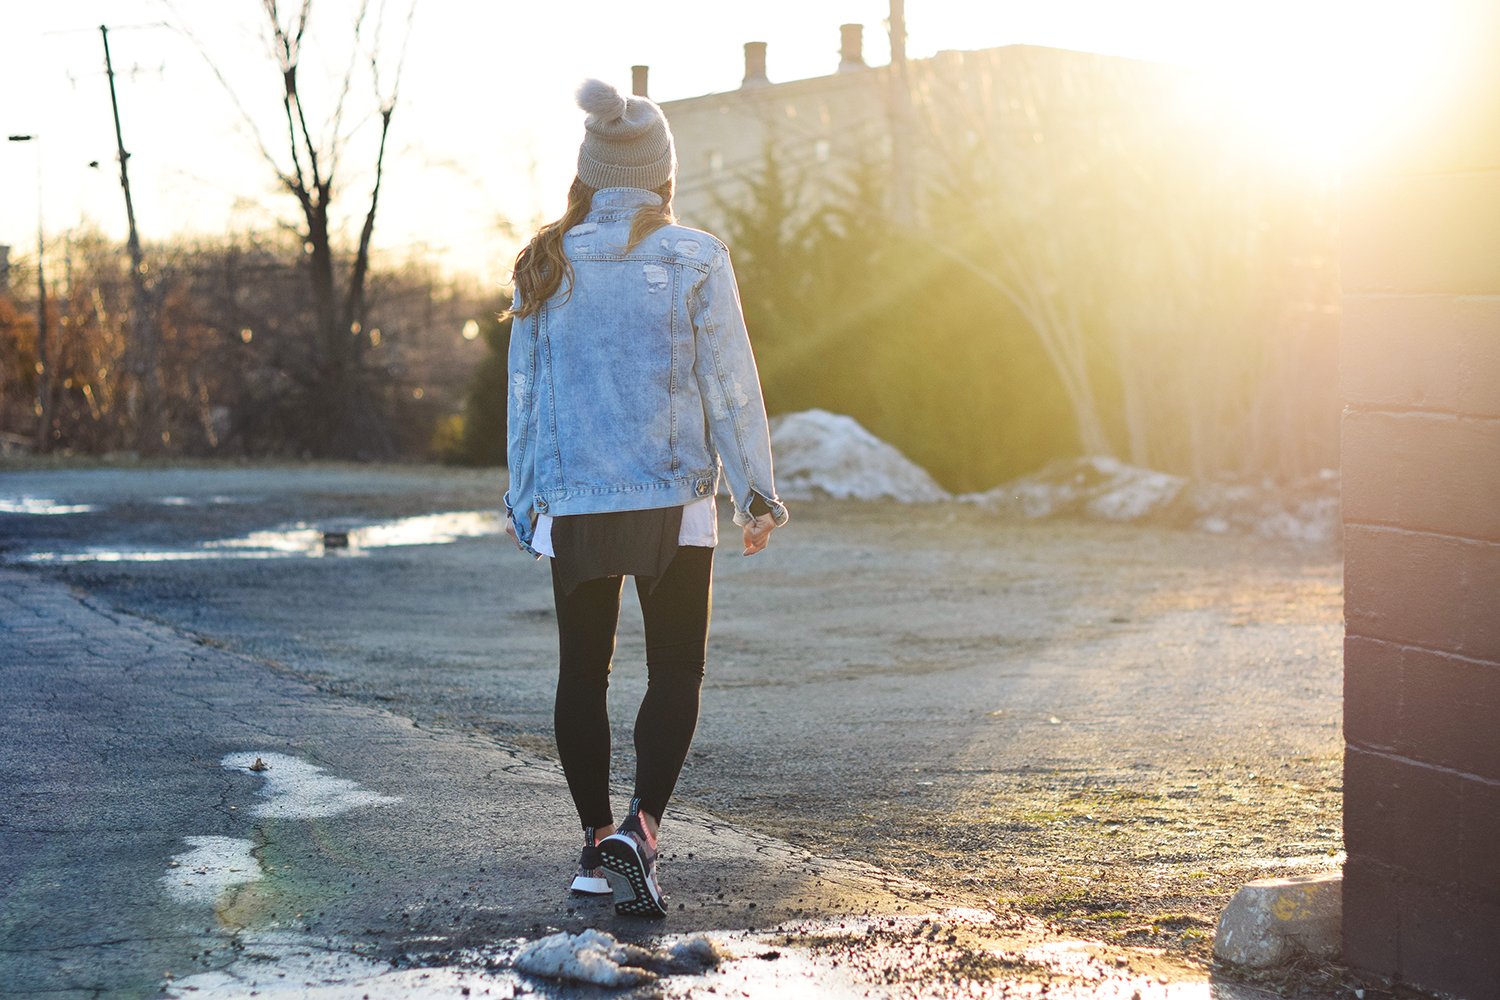 cool-shot-girl-walking-sunset-denim-jacket